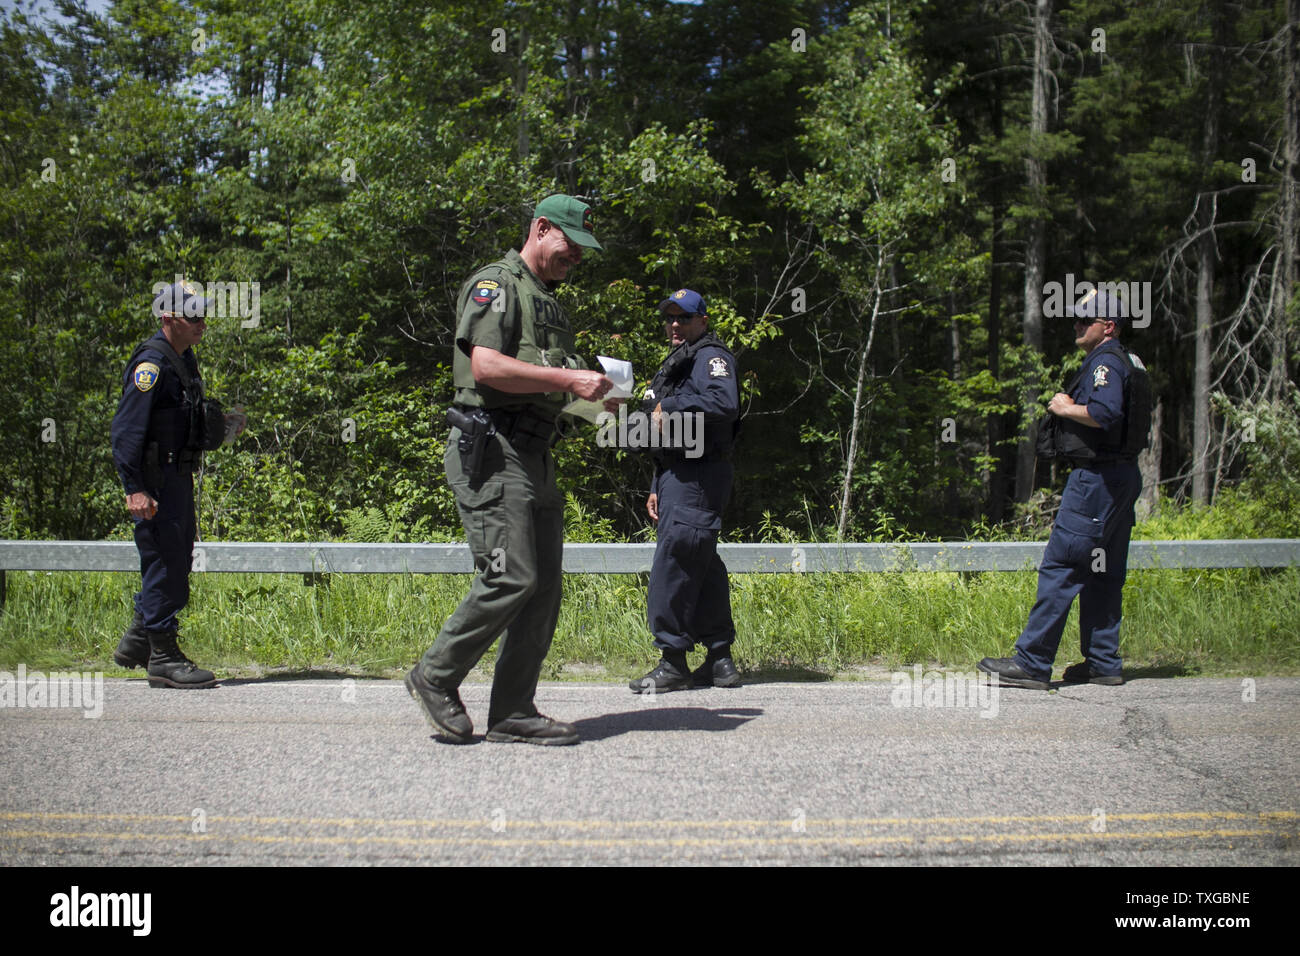 Map Of New York Dannemora.Law Enforcement Personnel Check A Map Before Searching A Wooded Area